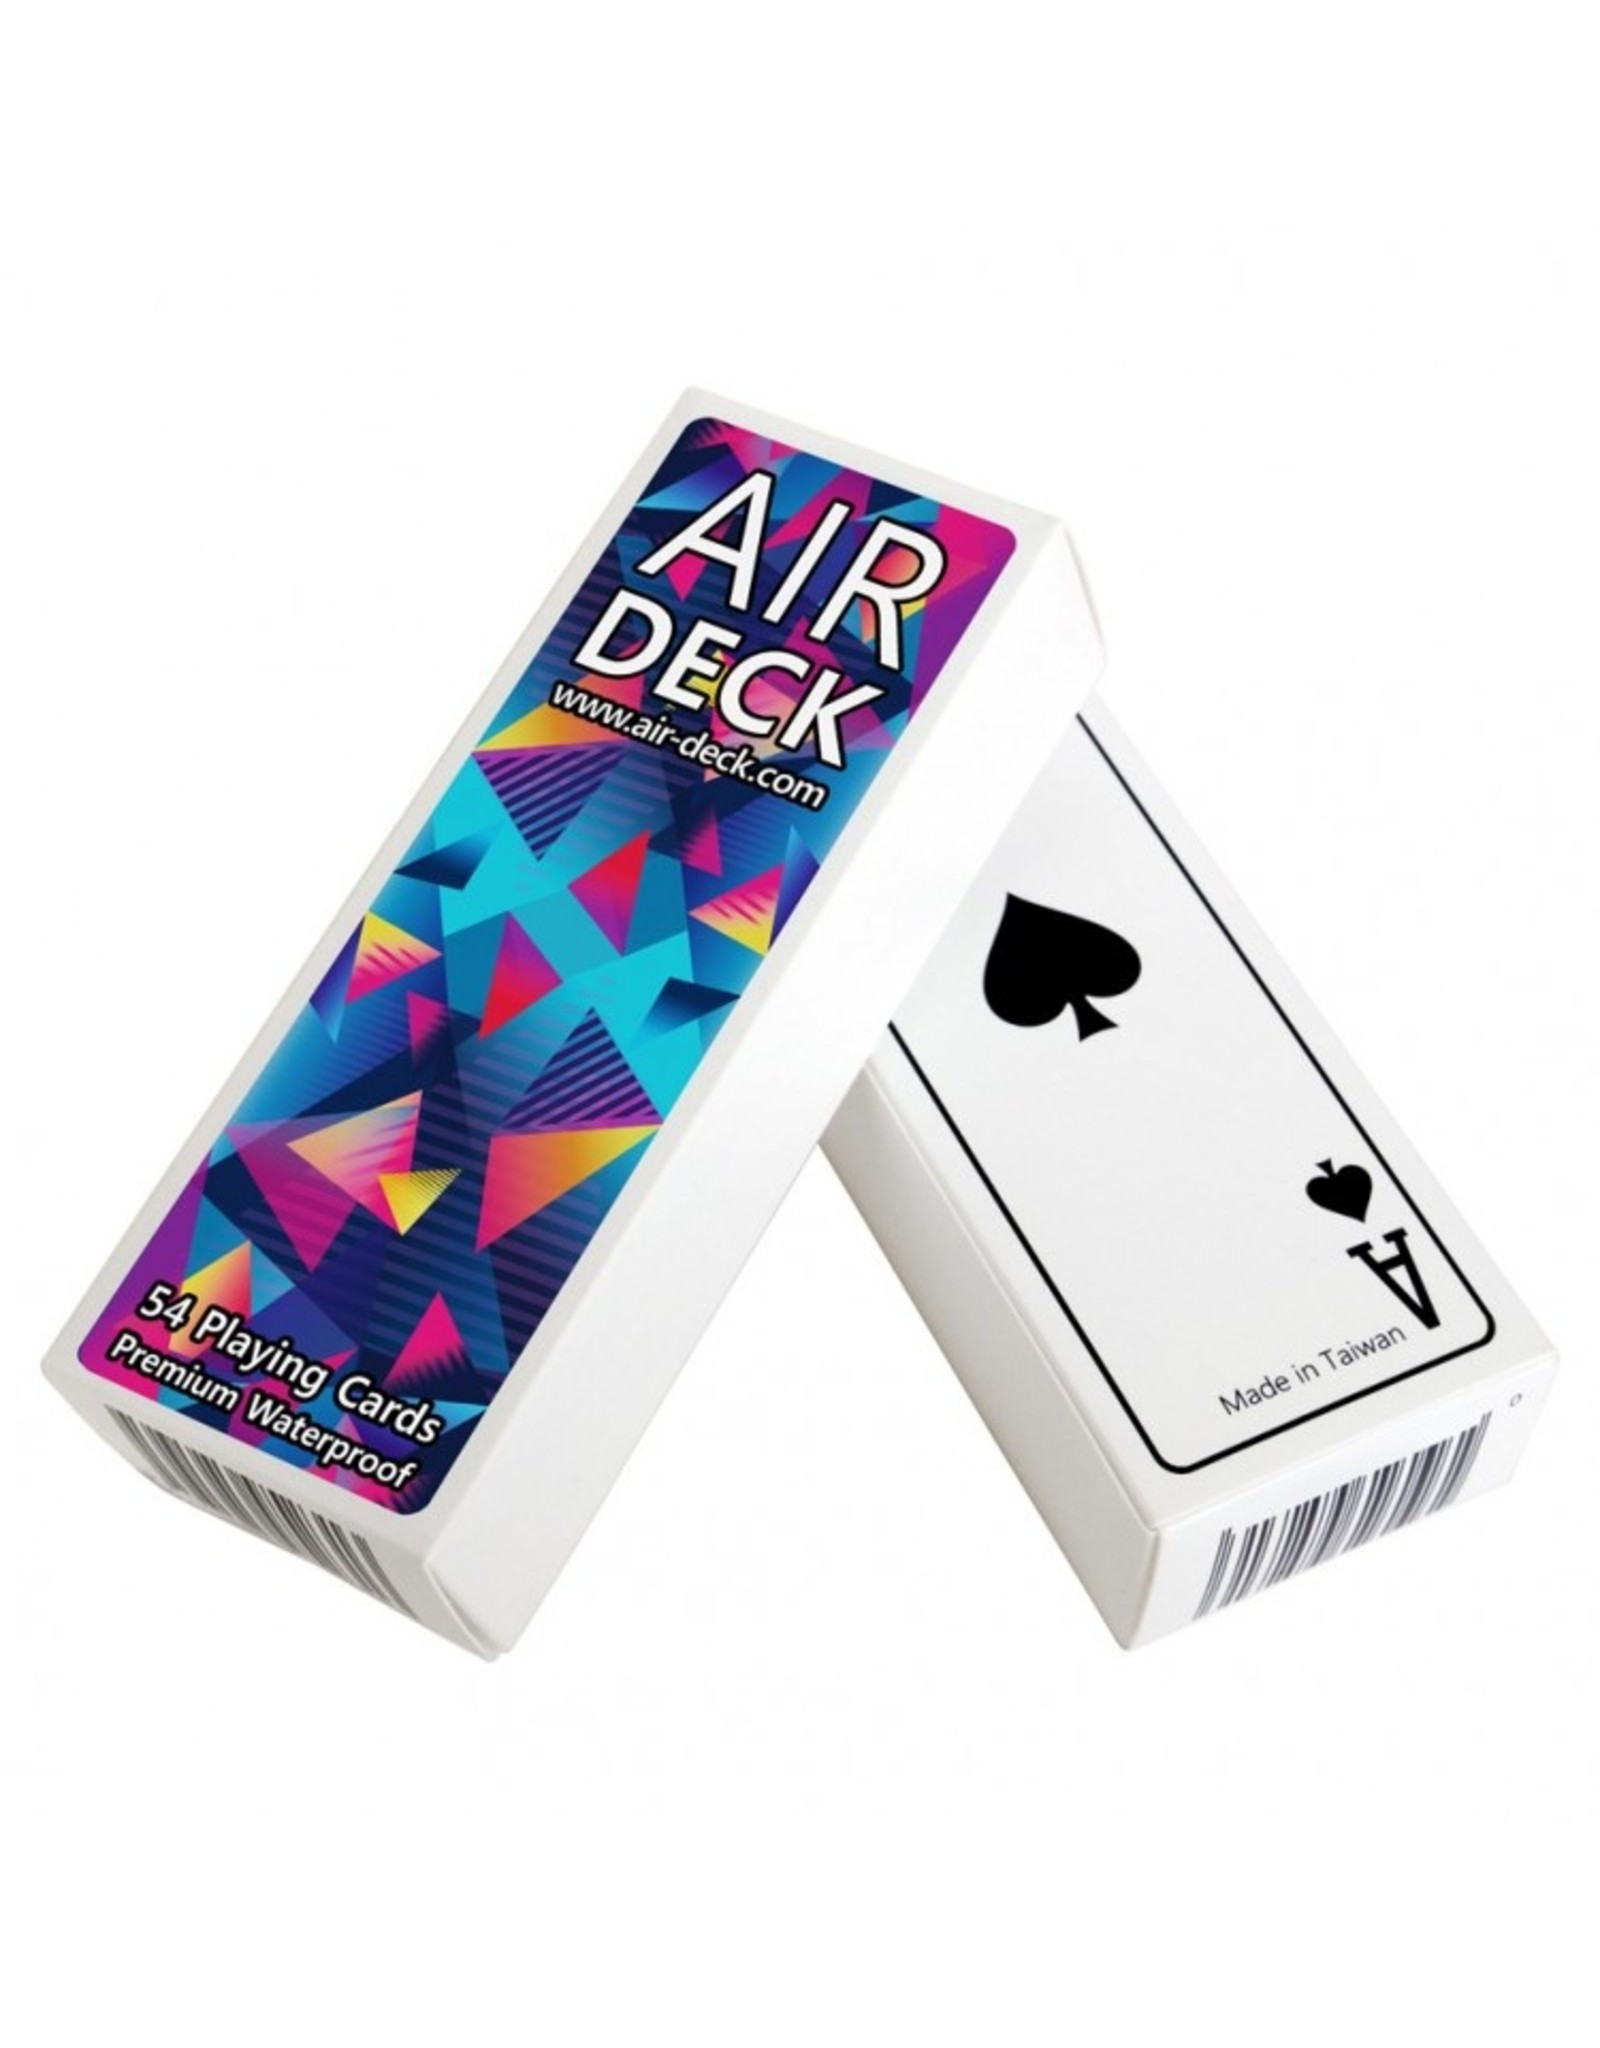 Tiptop Things Air Deck: Retro